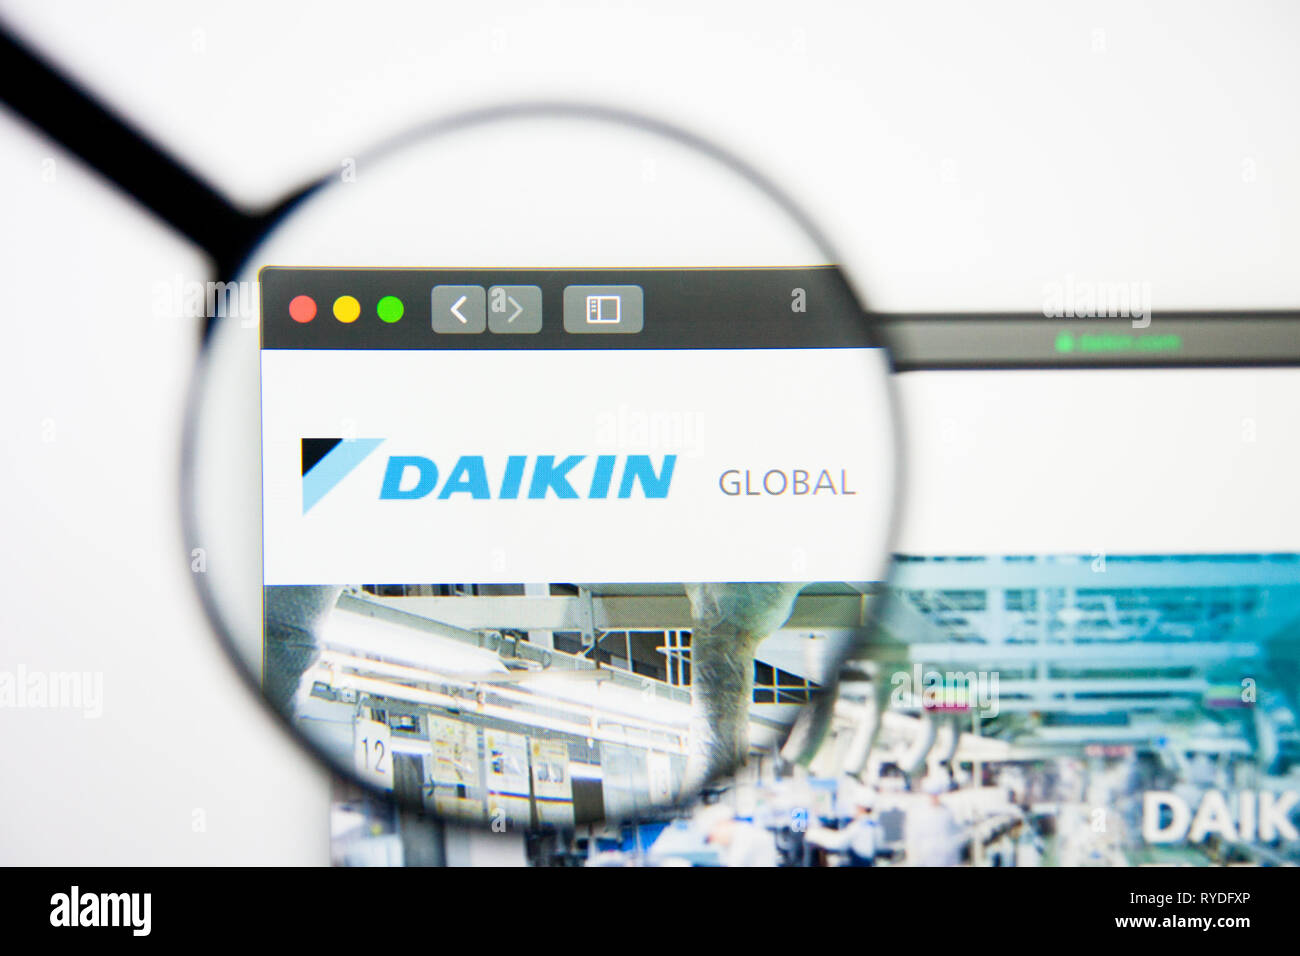 Los Angeles, California, USA - 5 March 2019: Daikin Industries website homepage. Daikin Industries logo visible on display screen, Illustrative Stock Photo